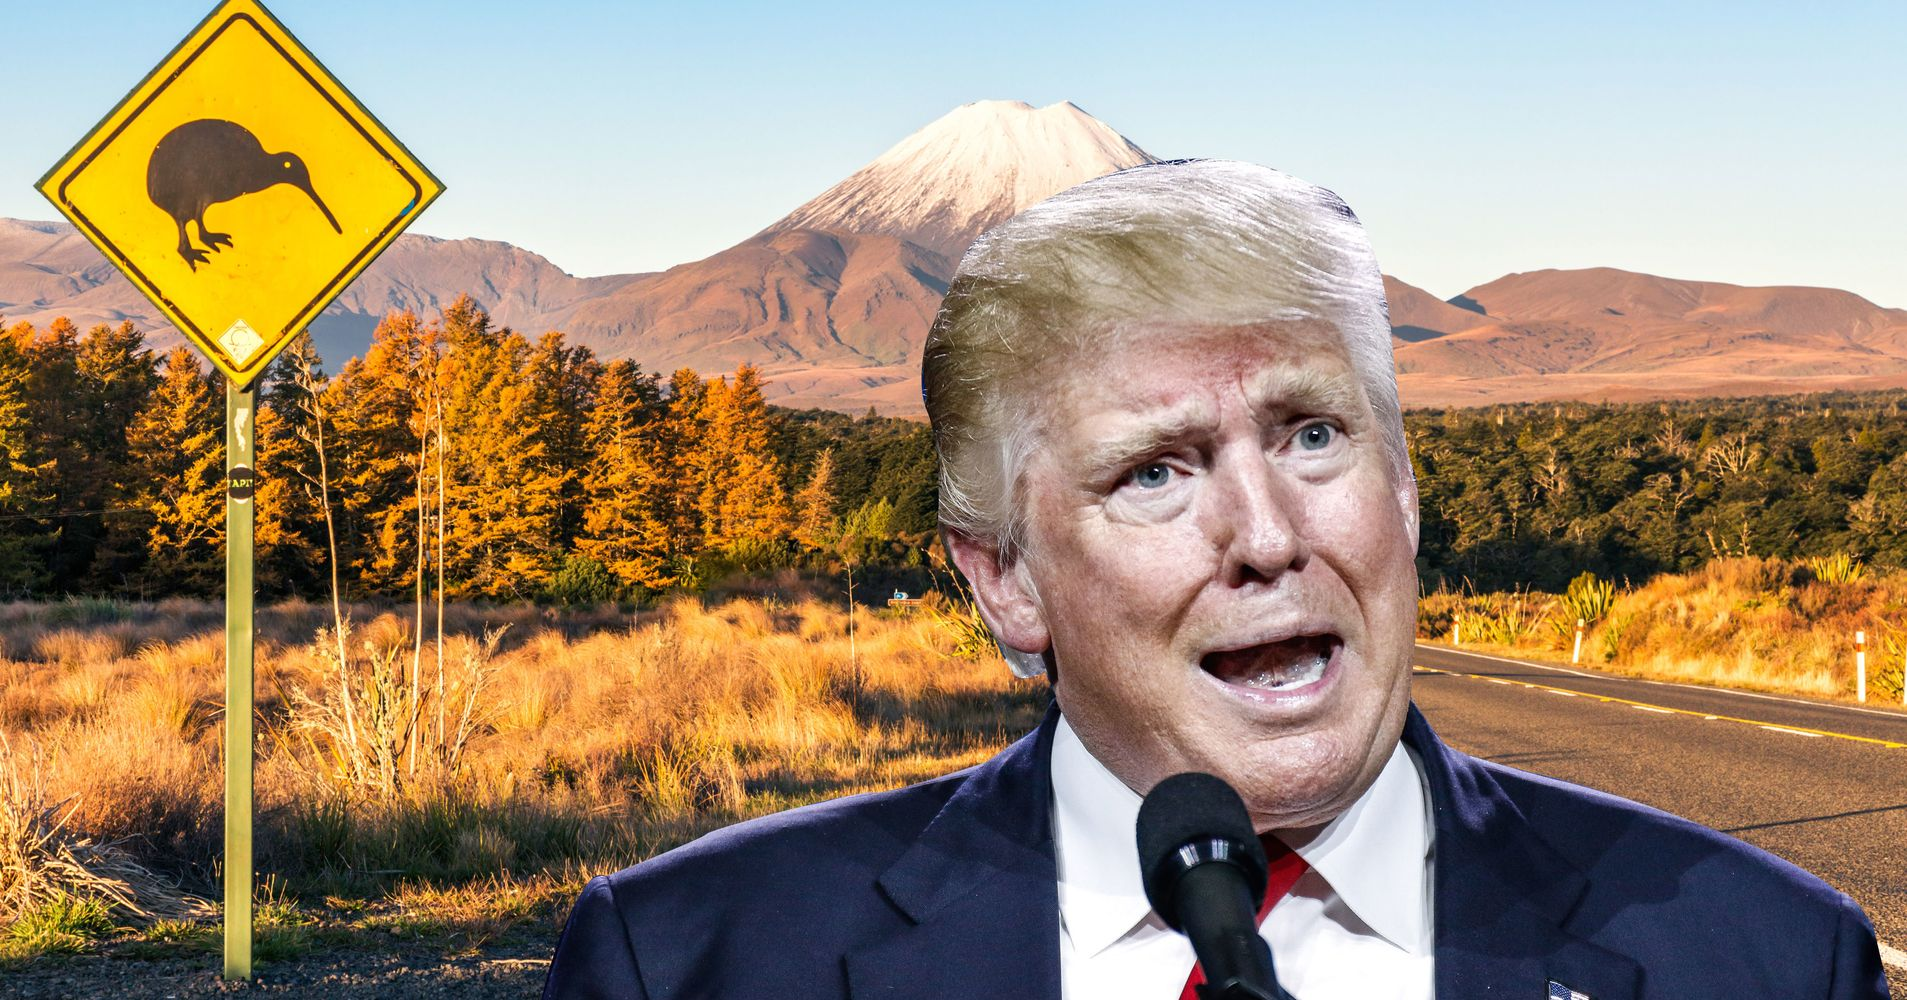 15 Reasons We Should All Move To New Zealand If Donald Trump Becomes President